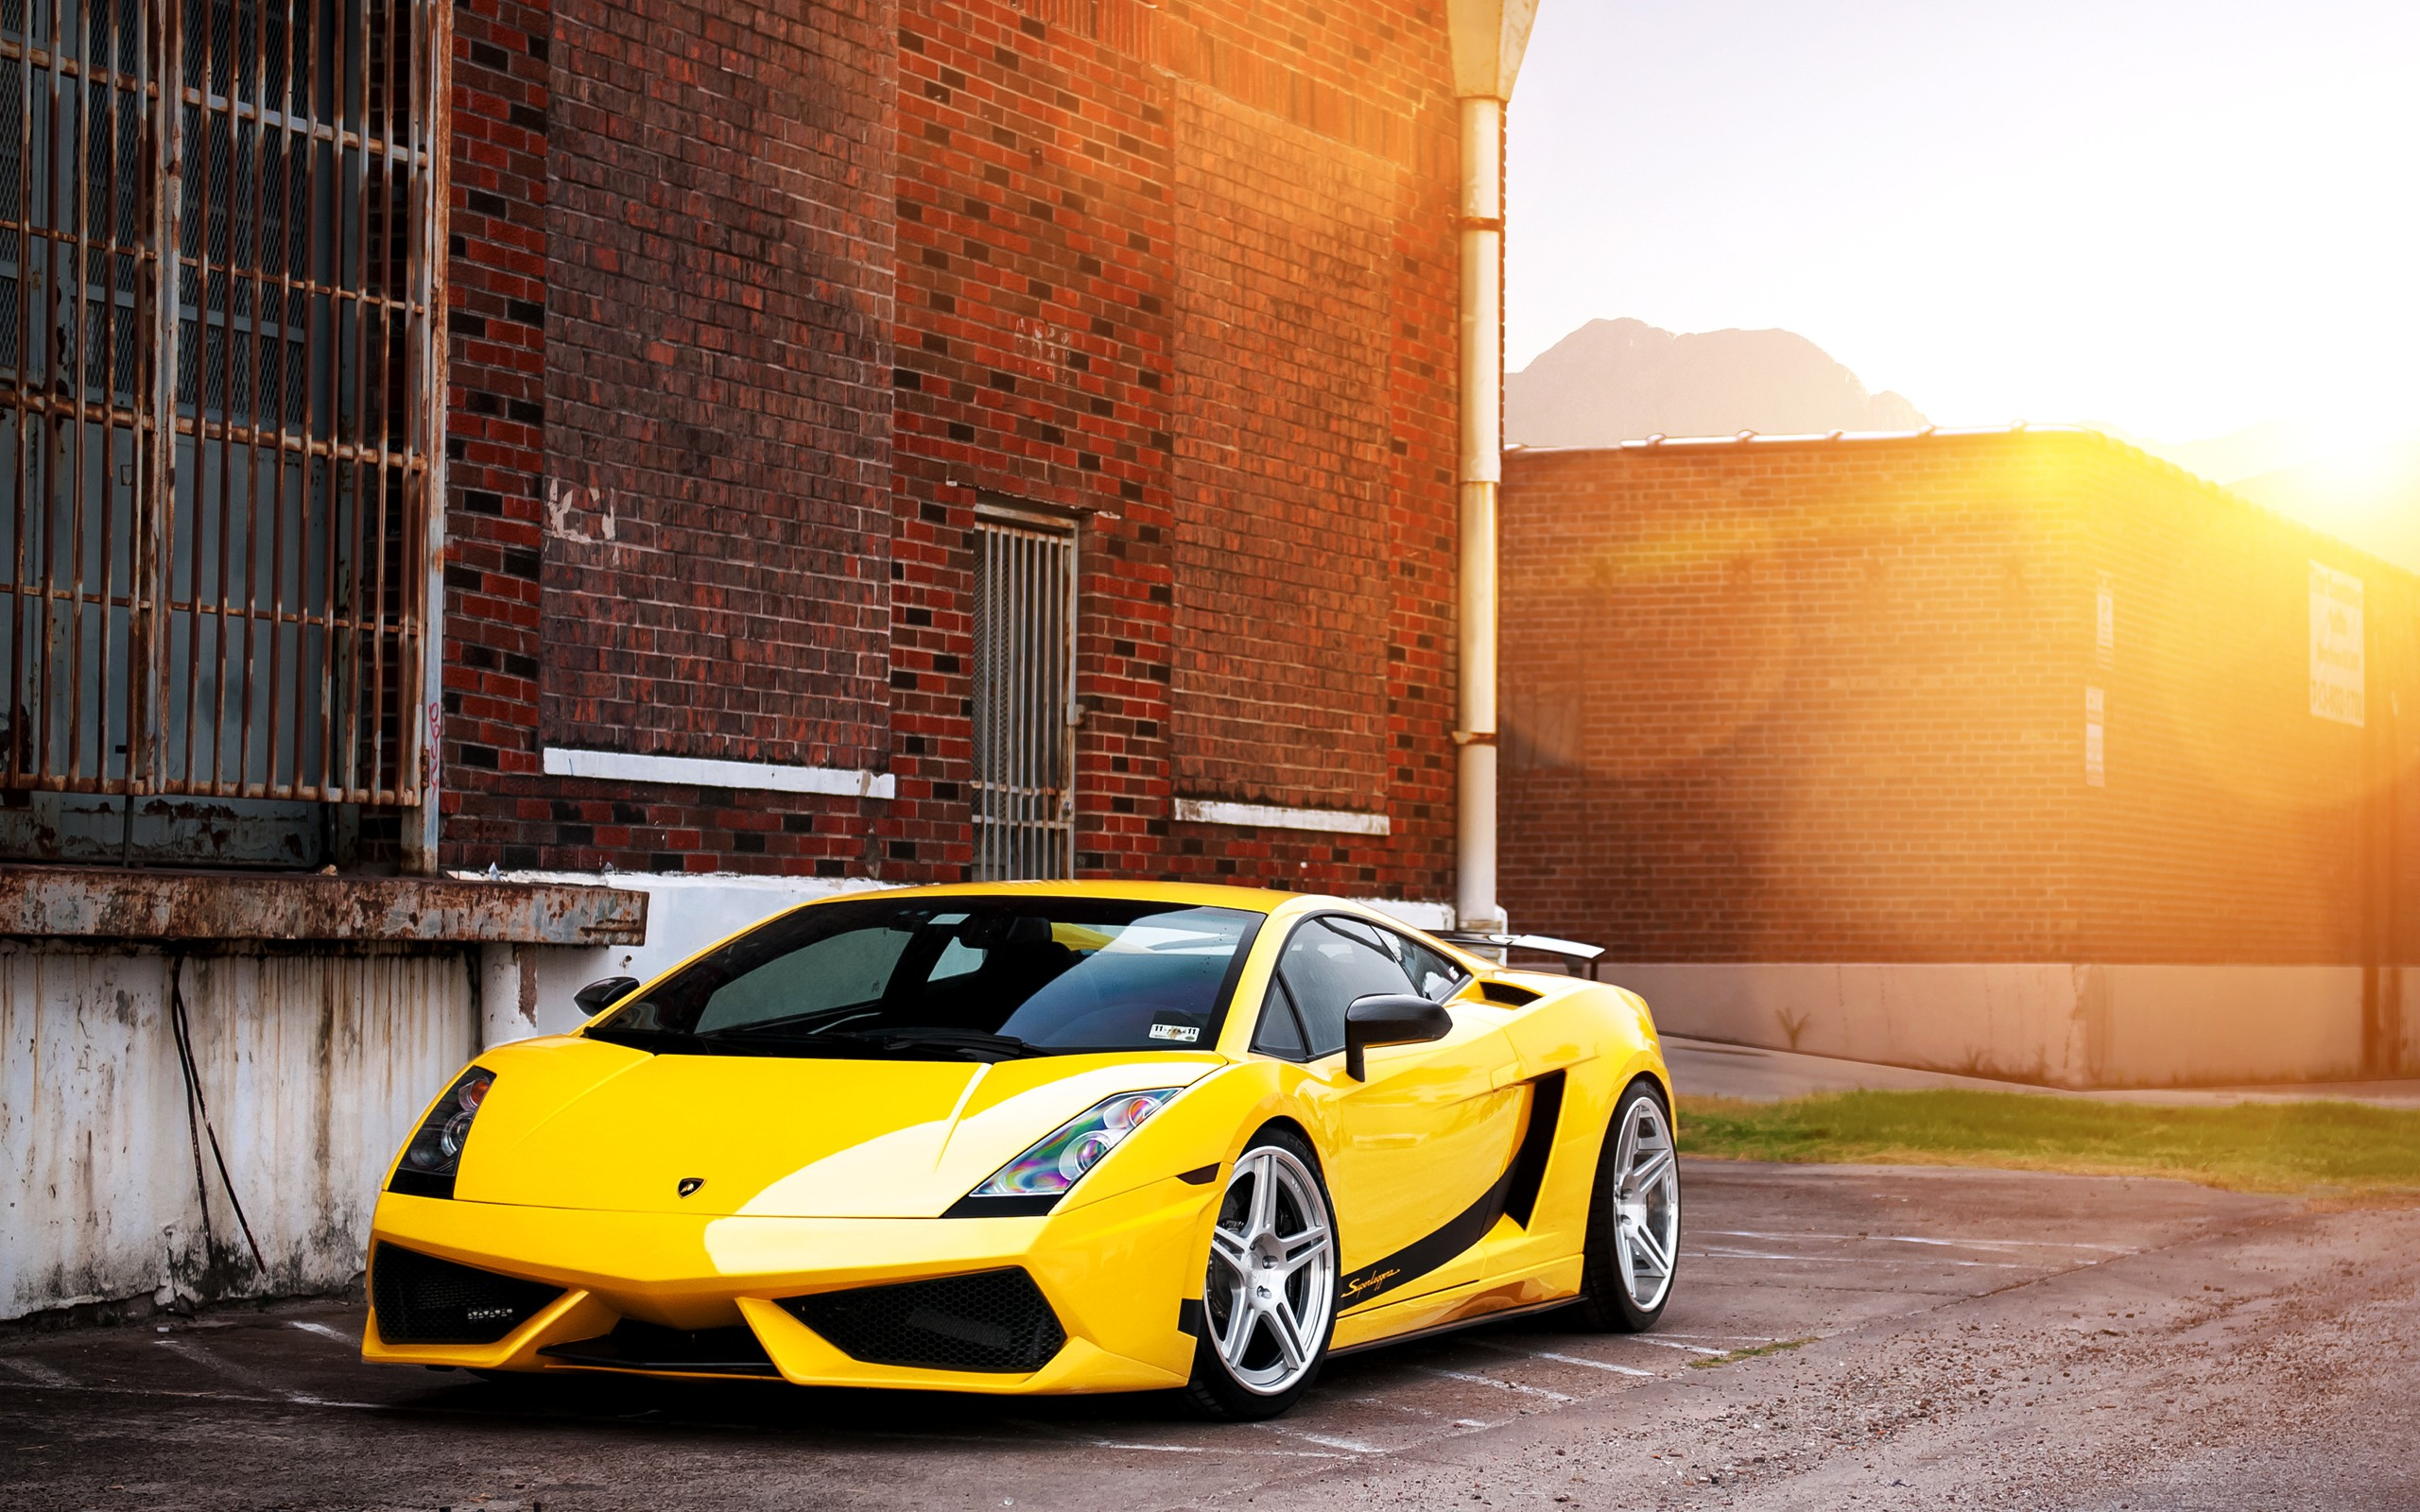 Daily Wallpaper Lamborghini Gallardo Superleggera I Like To Waste My Time